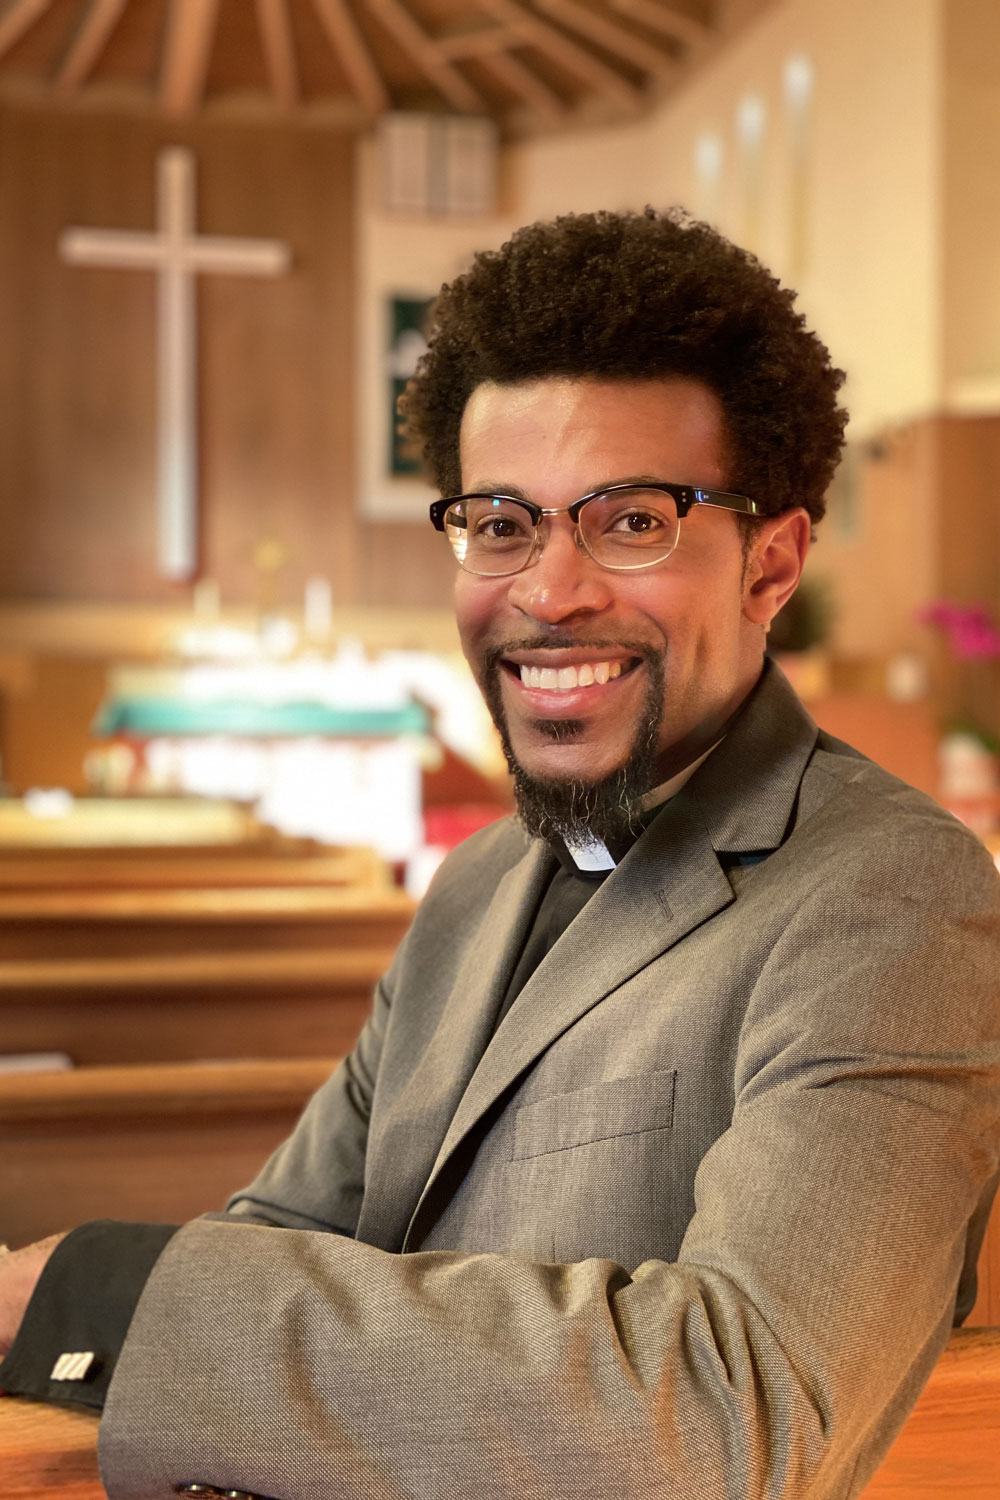 The Rev. Dr. Theon Johnson III is a participant in our August 12, 2020, Dismantling Racism Town Hall.